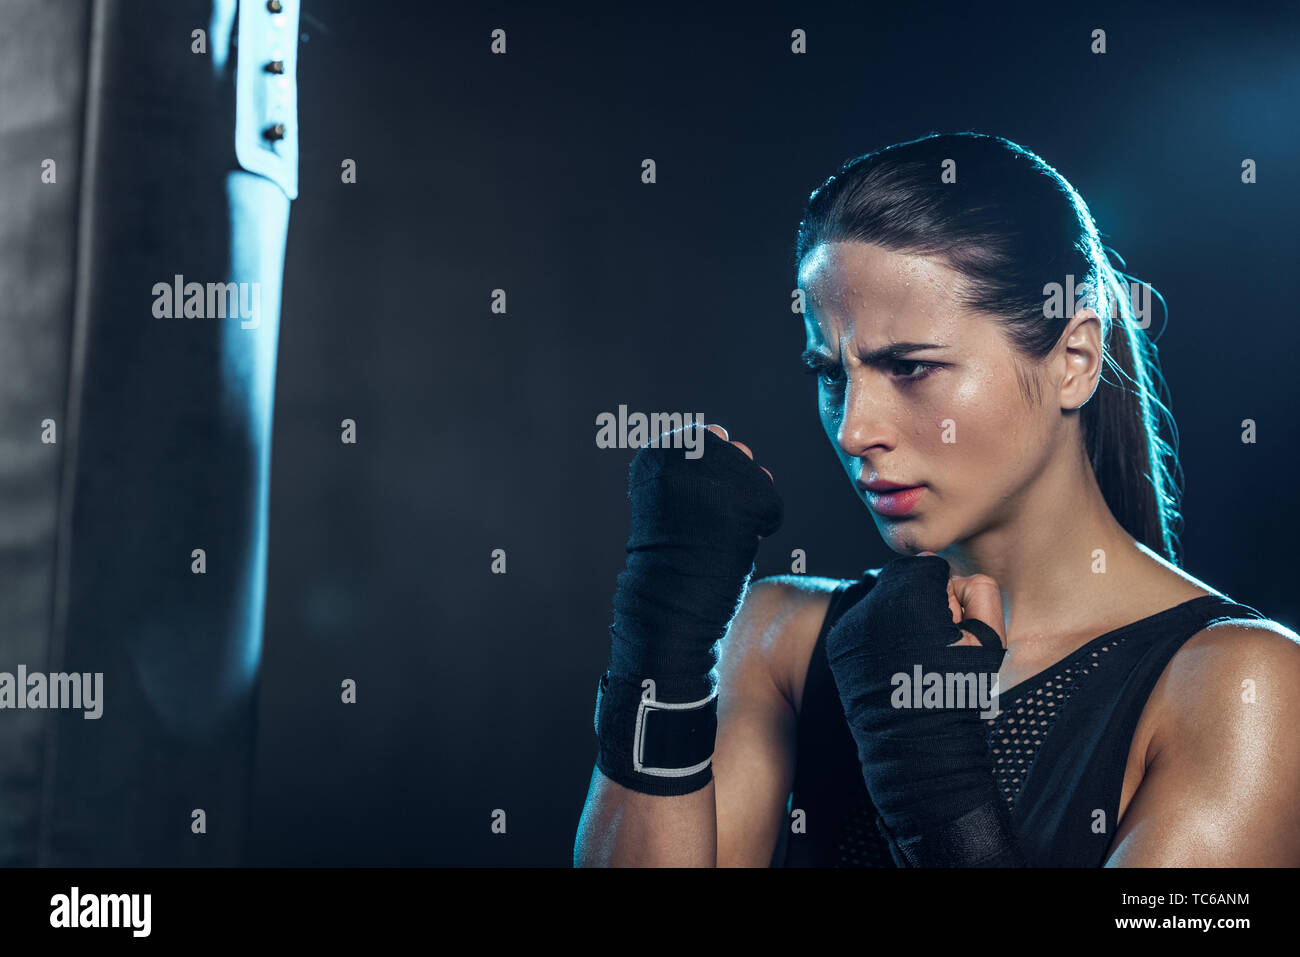 exhausted boxer in gloves looking at punching bag on black - Stock Image